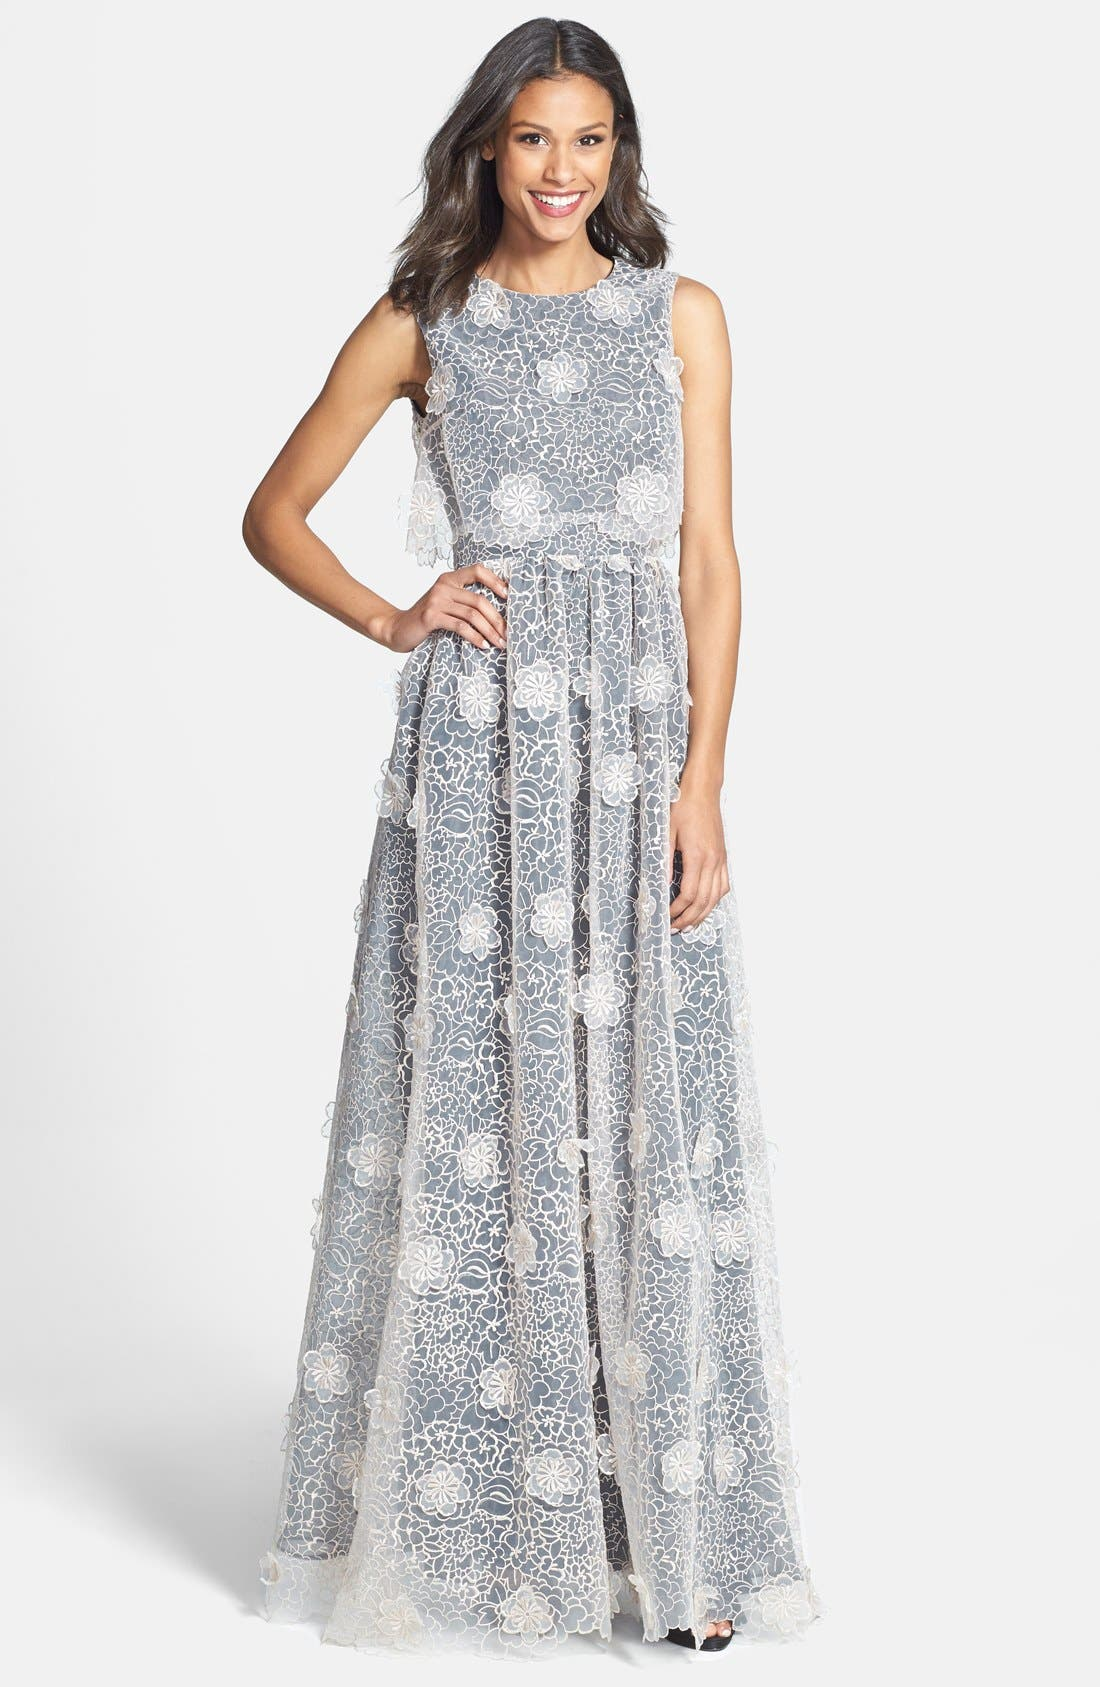 ERIN ERIN FETHERSTON 'Jan' 3D Floral Organza Gown, Main, color, 687